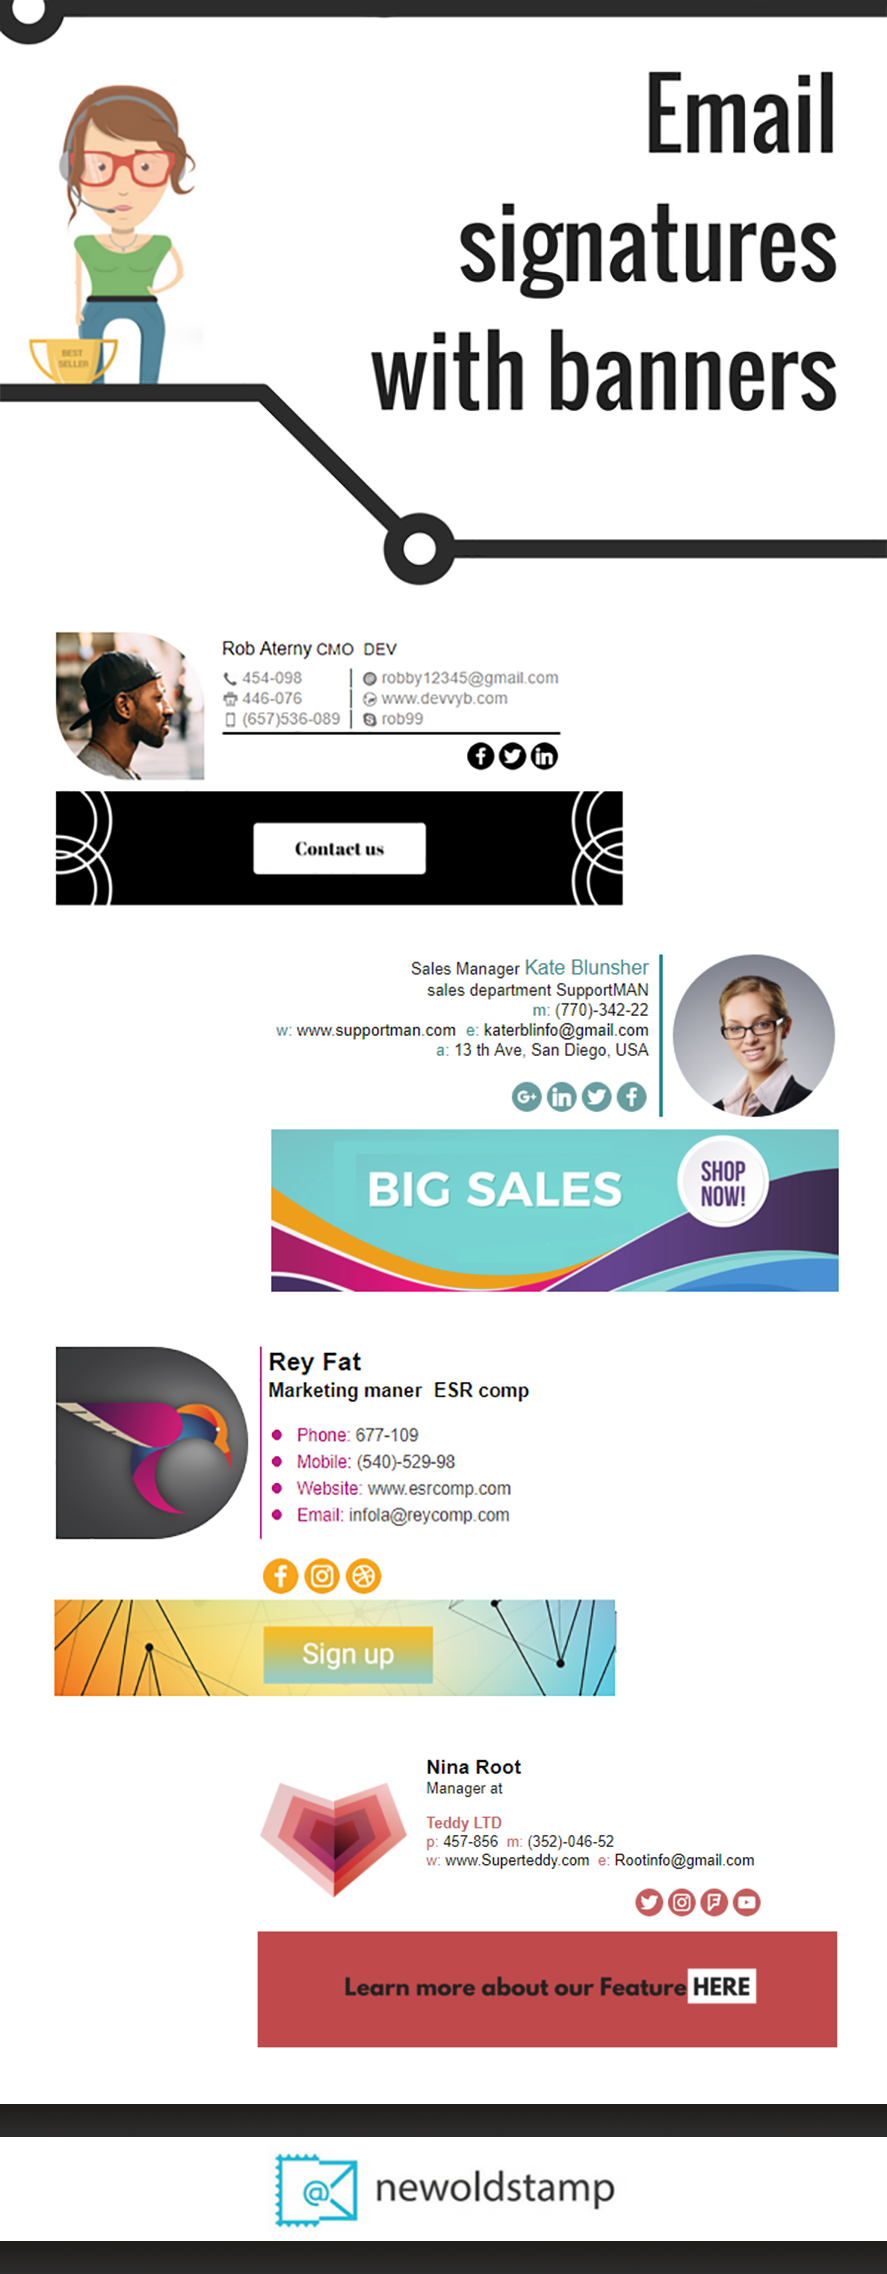 Email signature with banners Email signature design